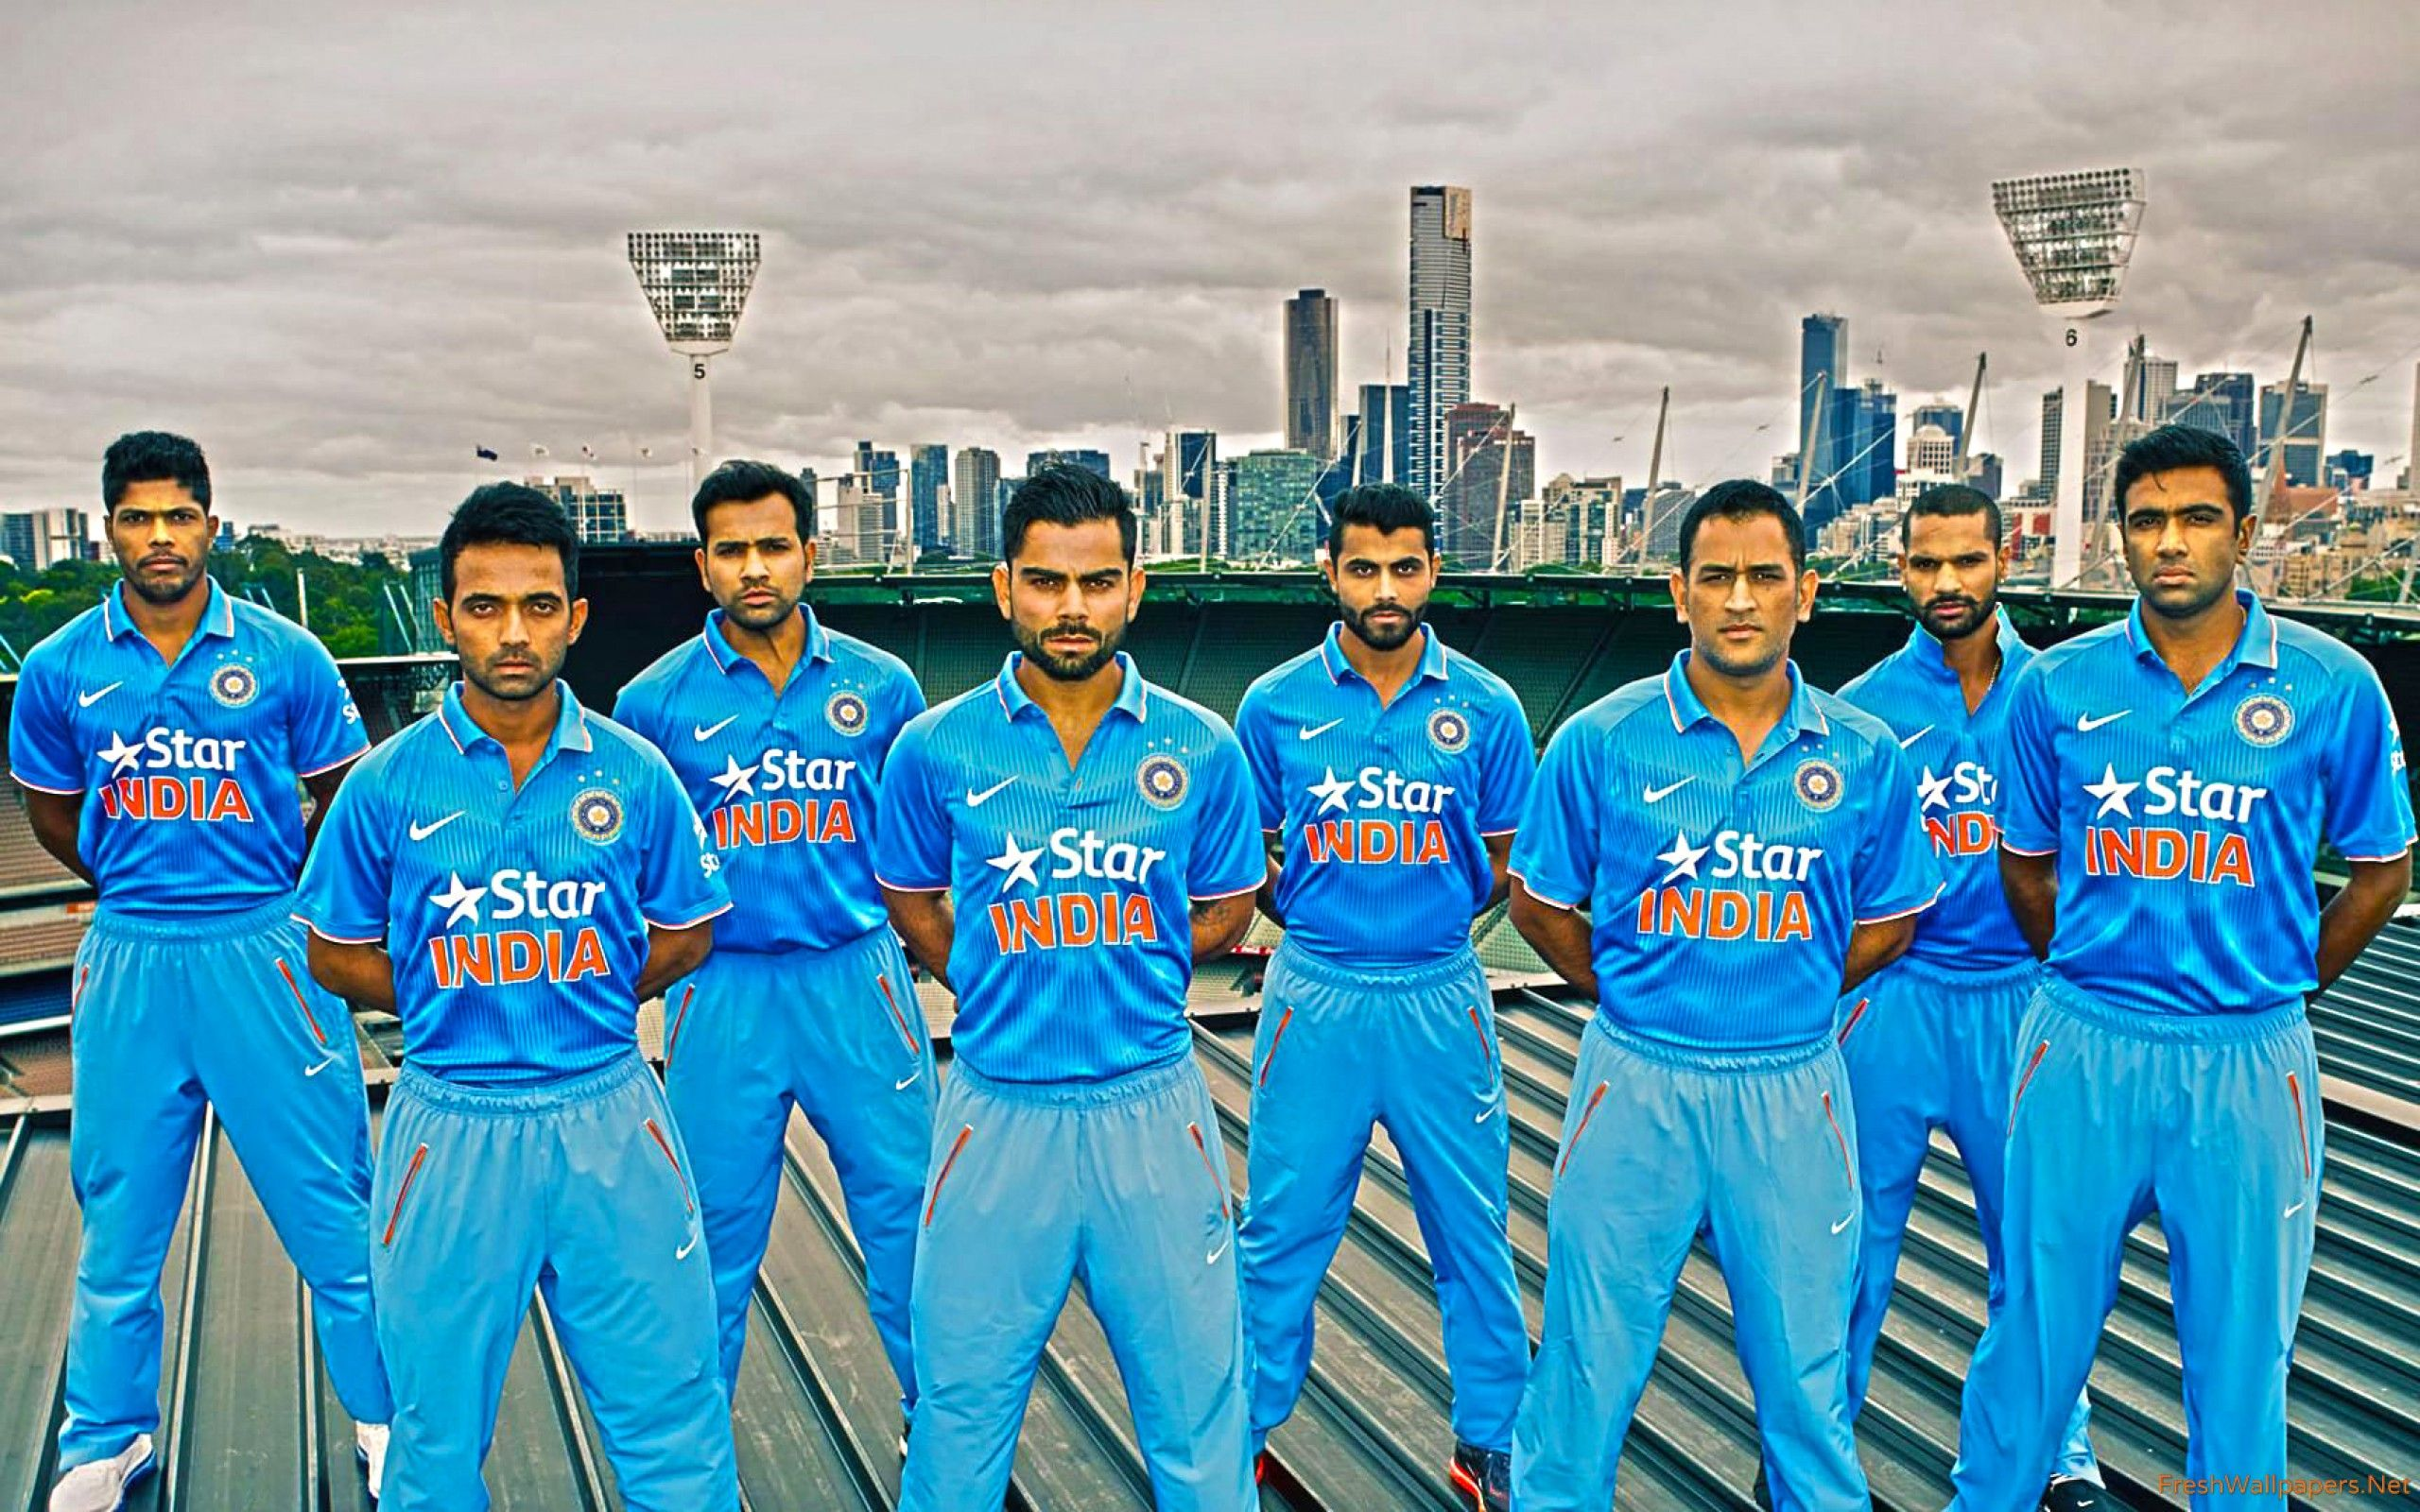 45 Indian Cricket Team Wallpapers   Download at WallpaperBro 2560x1600